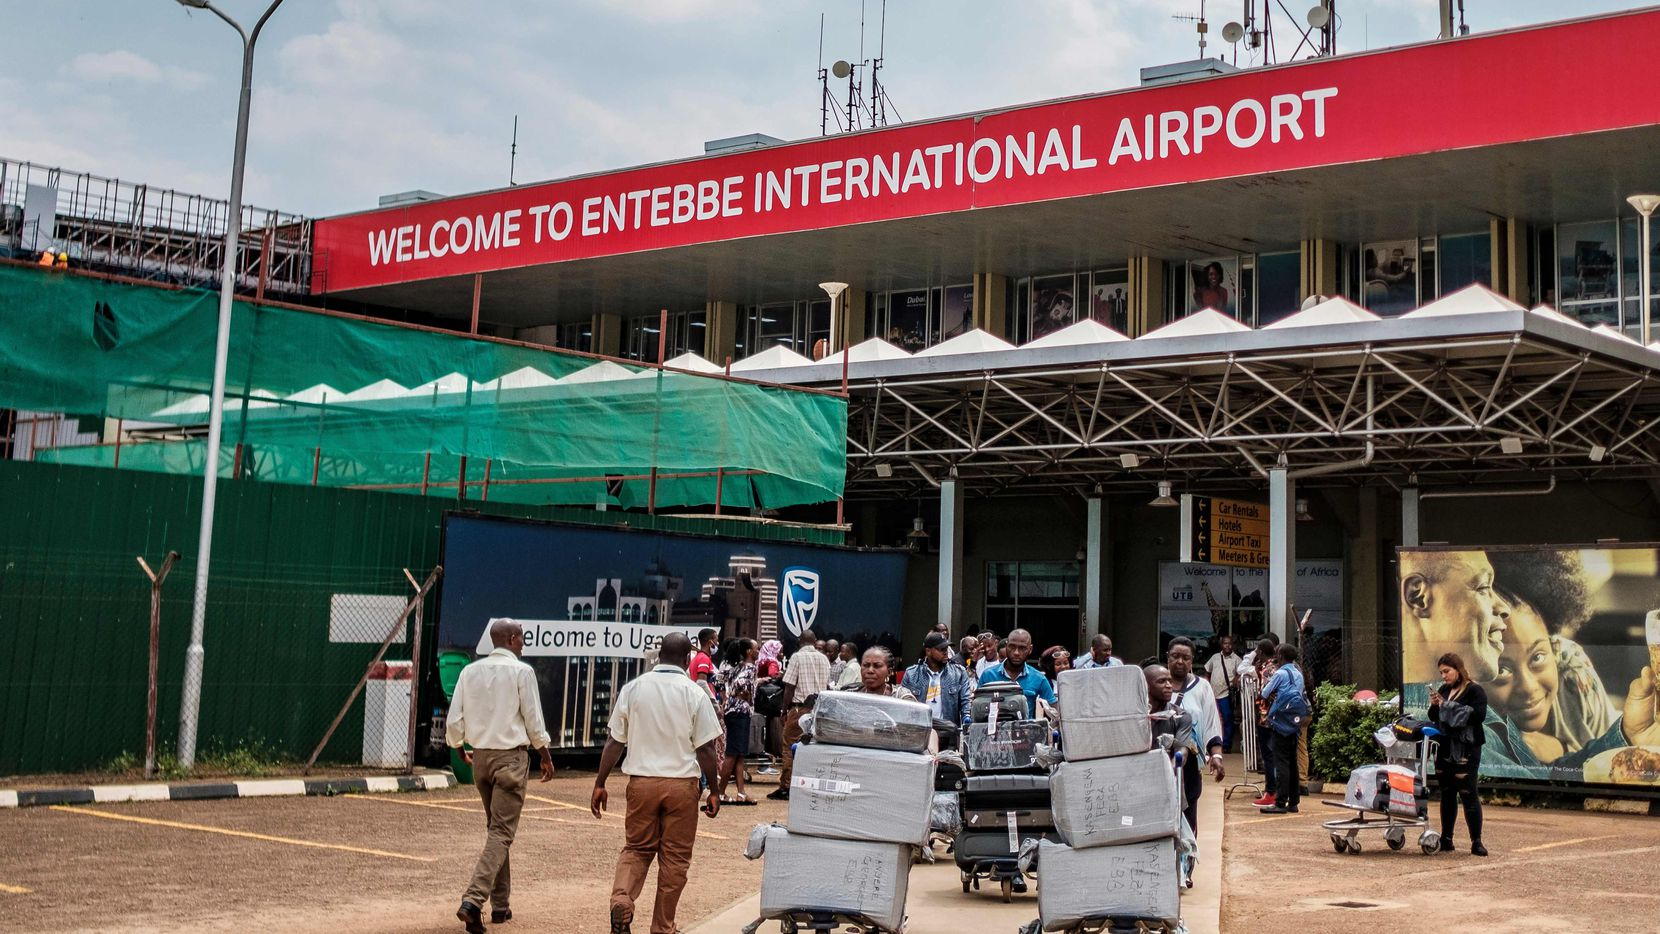 Entebbe Airport in Uganda on March 3, 2020.